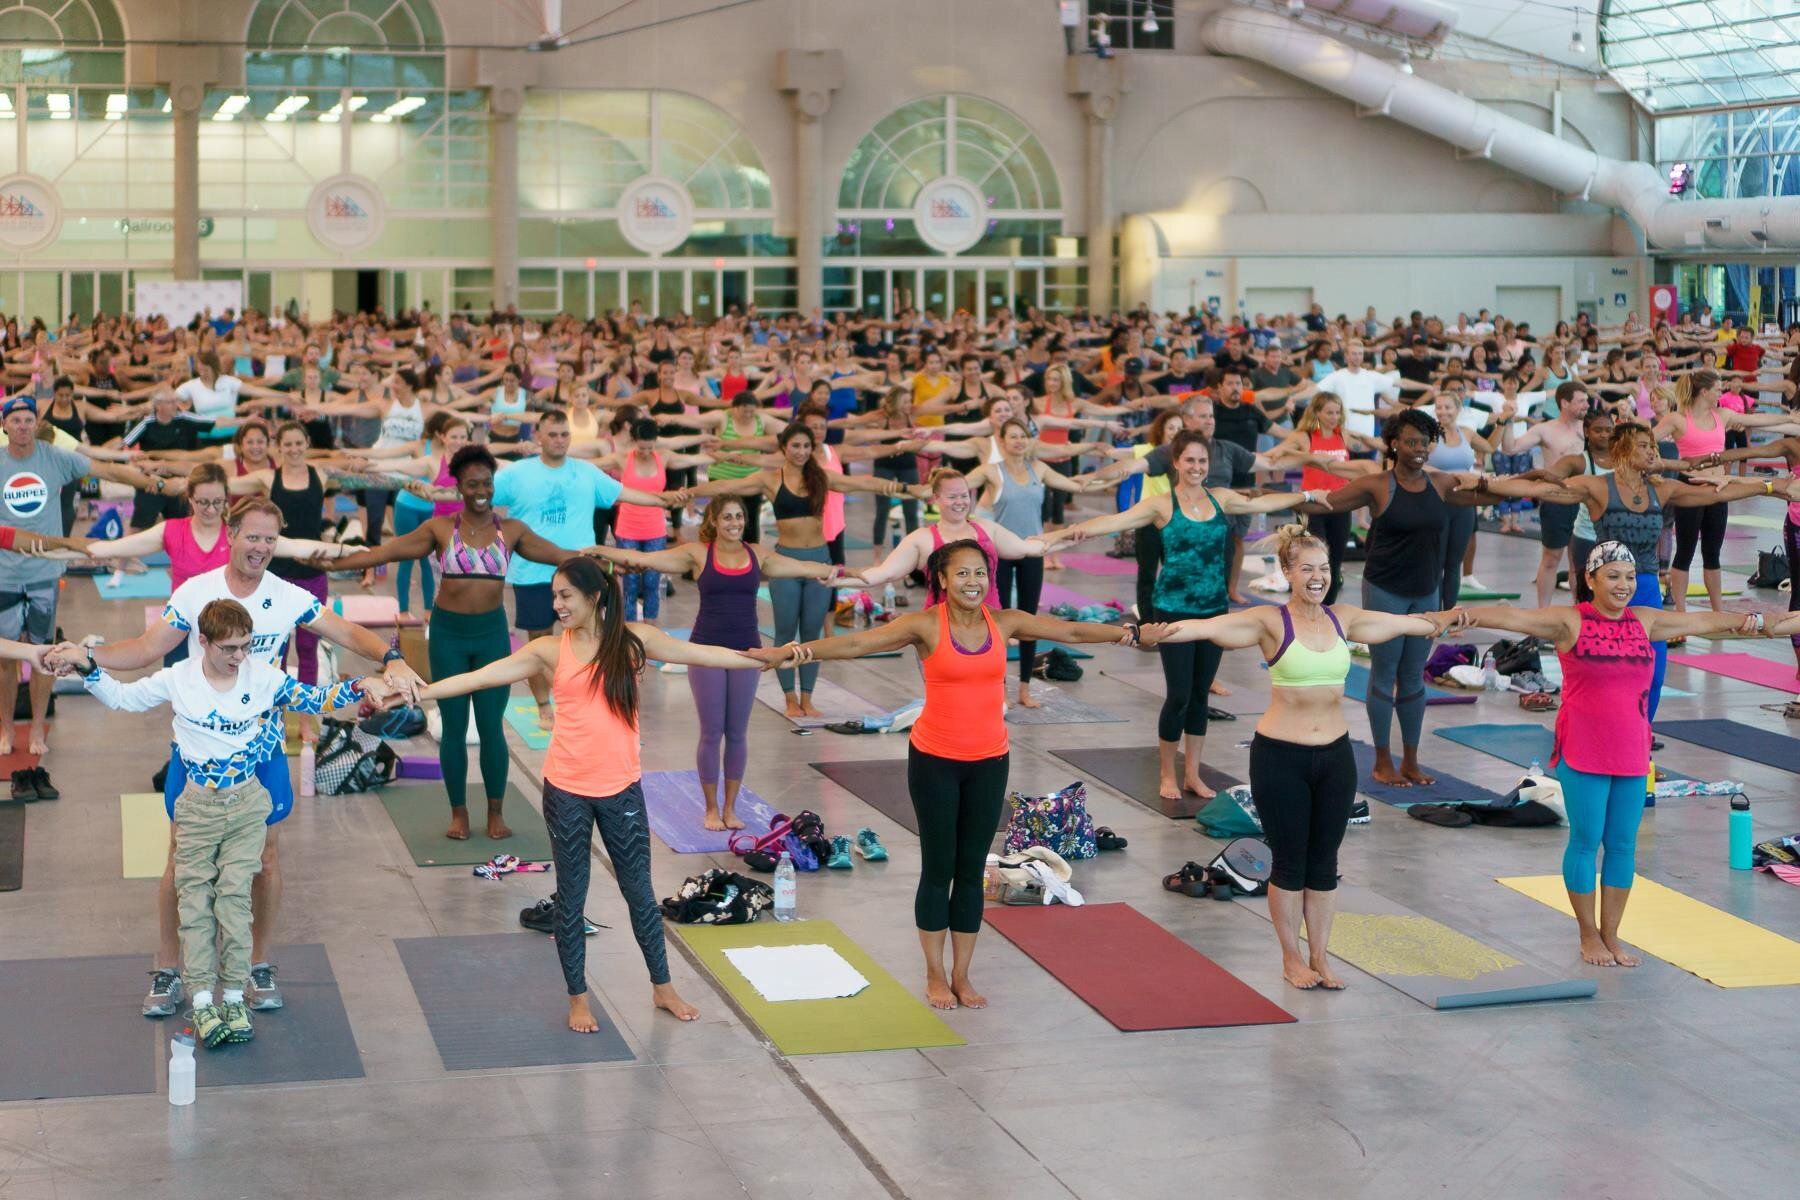 SDCC-yoga_NP-firstrow.jpg